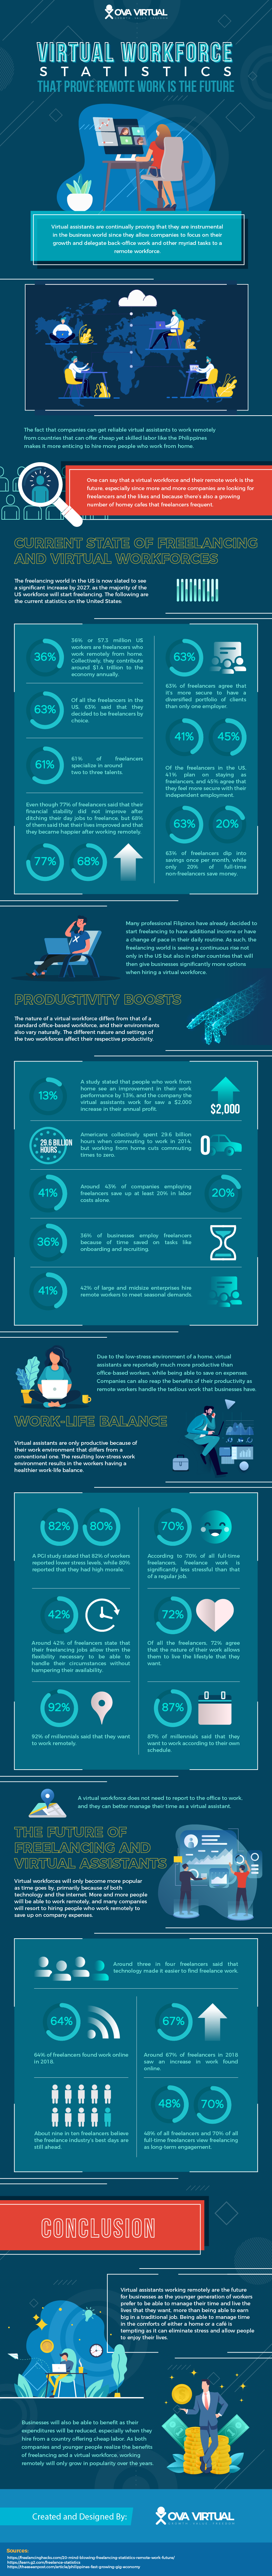 Virtual Workforce Statistics That Prove Remote Work Is The Future #infographic